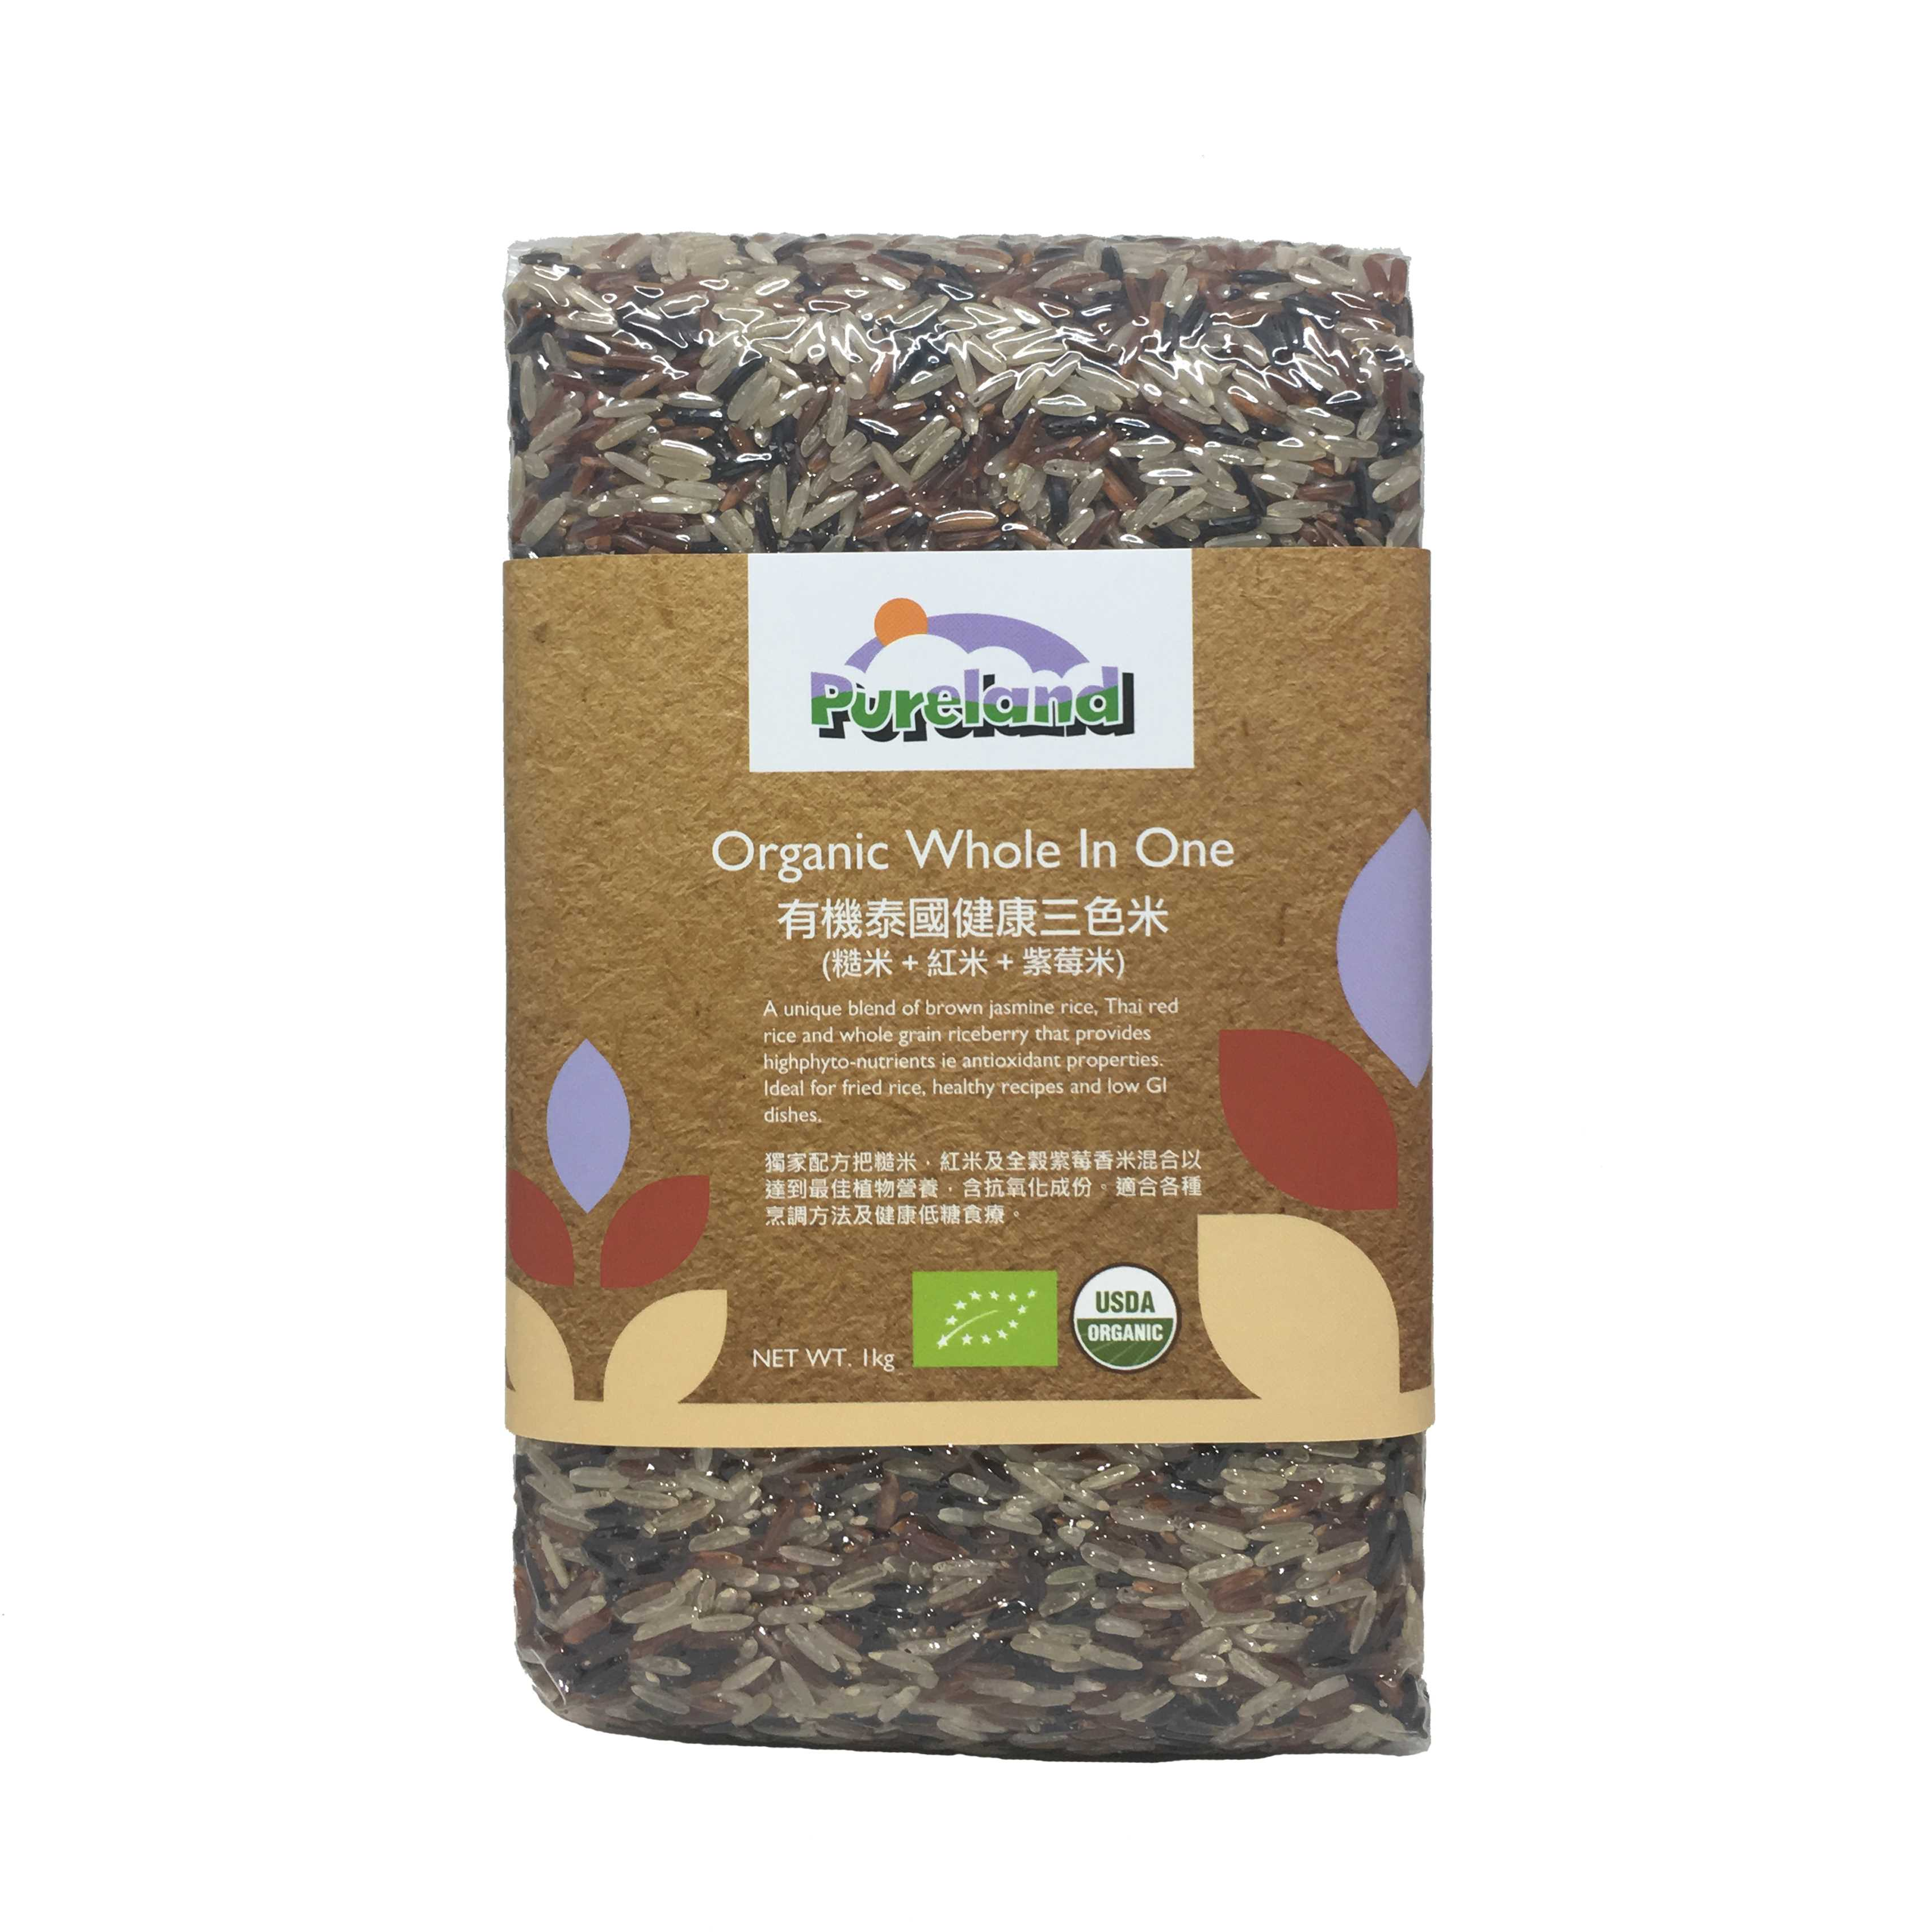 Pureland Organic Whole in One 1kg